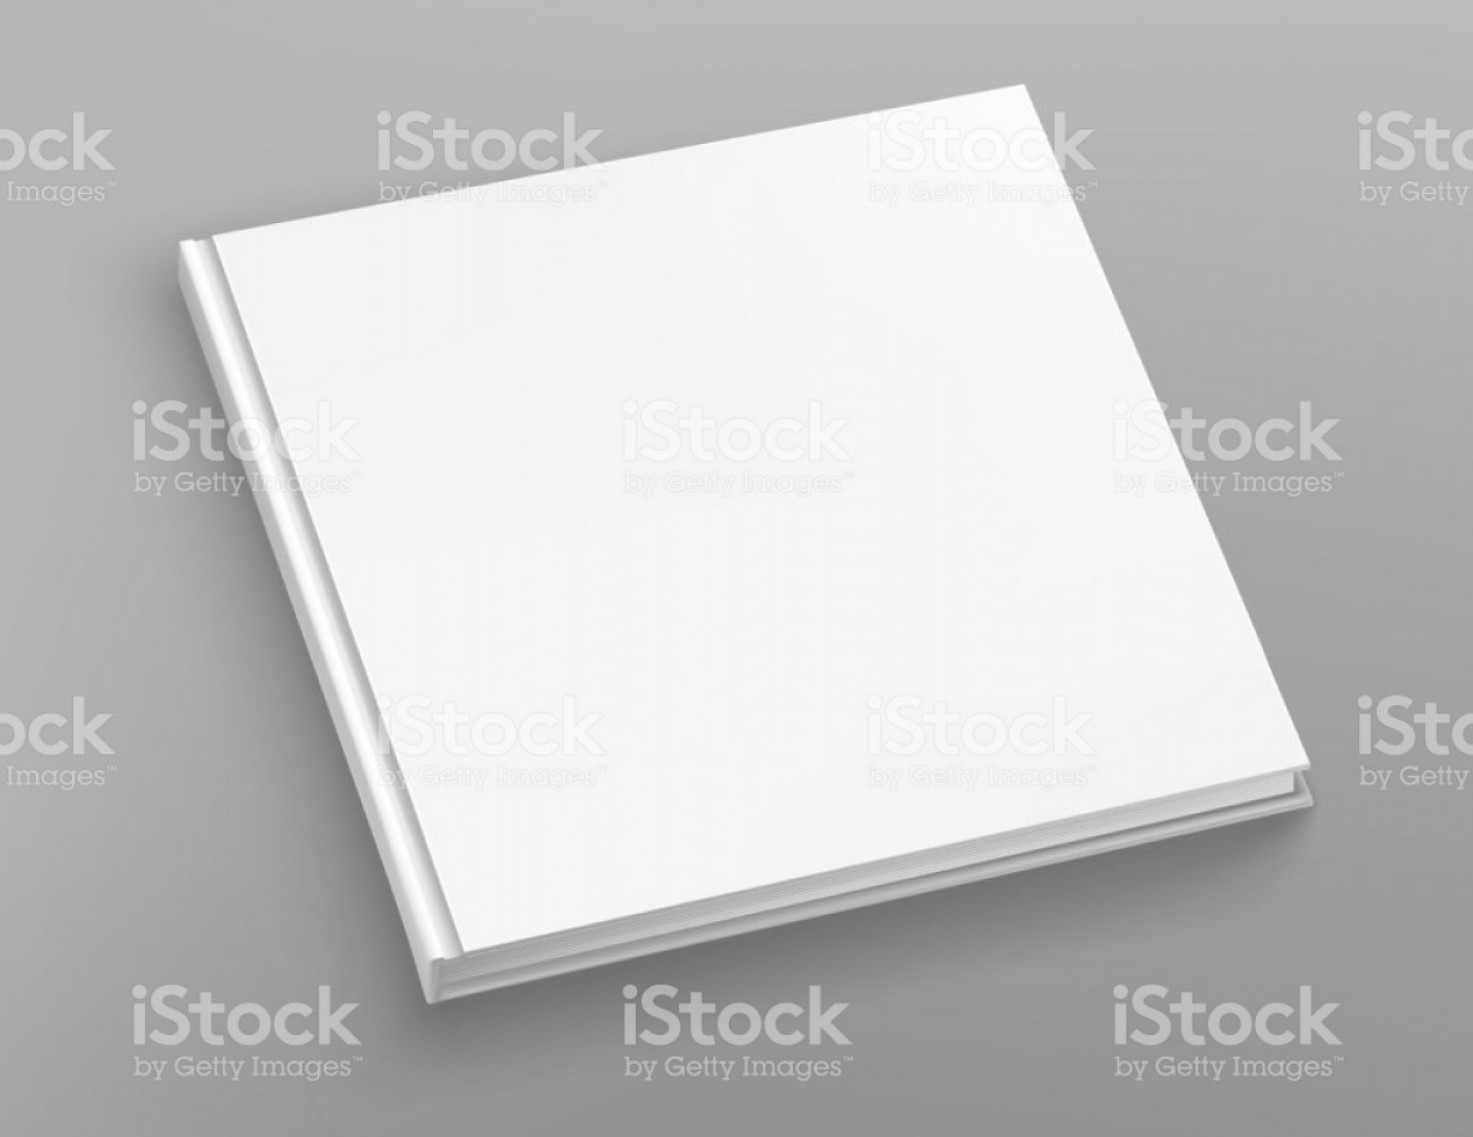 Vector Metal Album: White Hardcover Scuare Book Album Vector Mock Up On Grey Table Closed Book Top View Gm